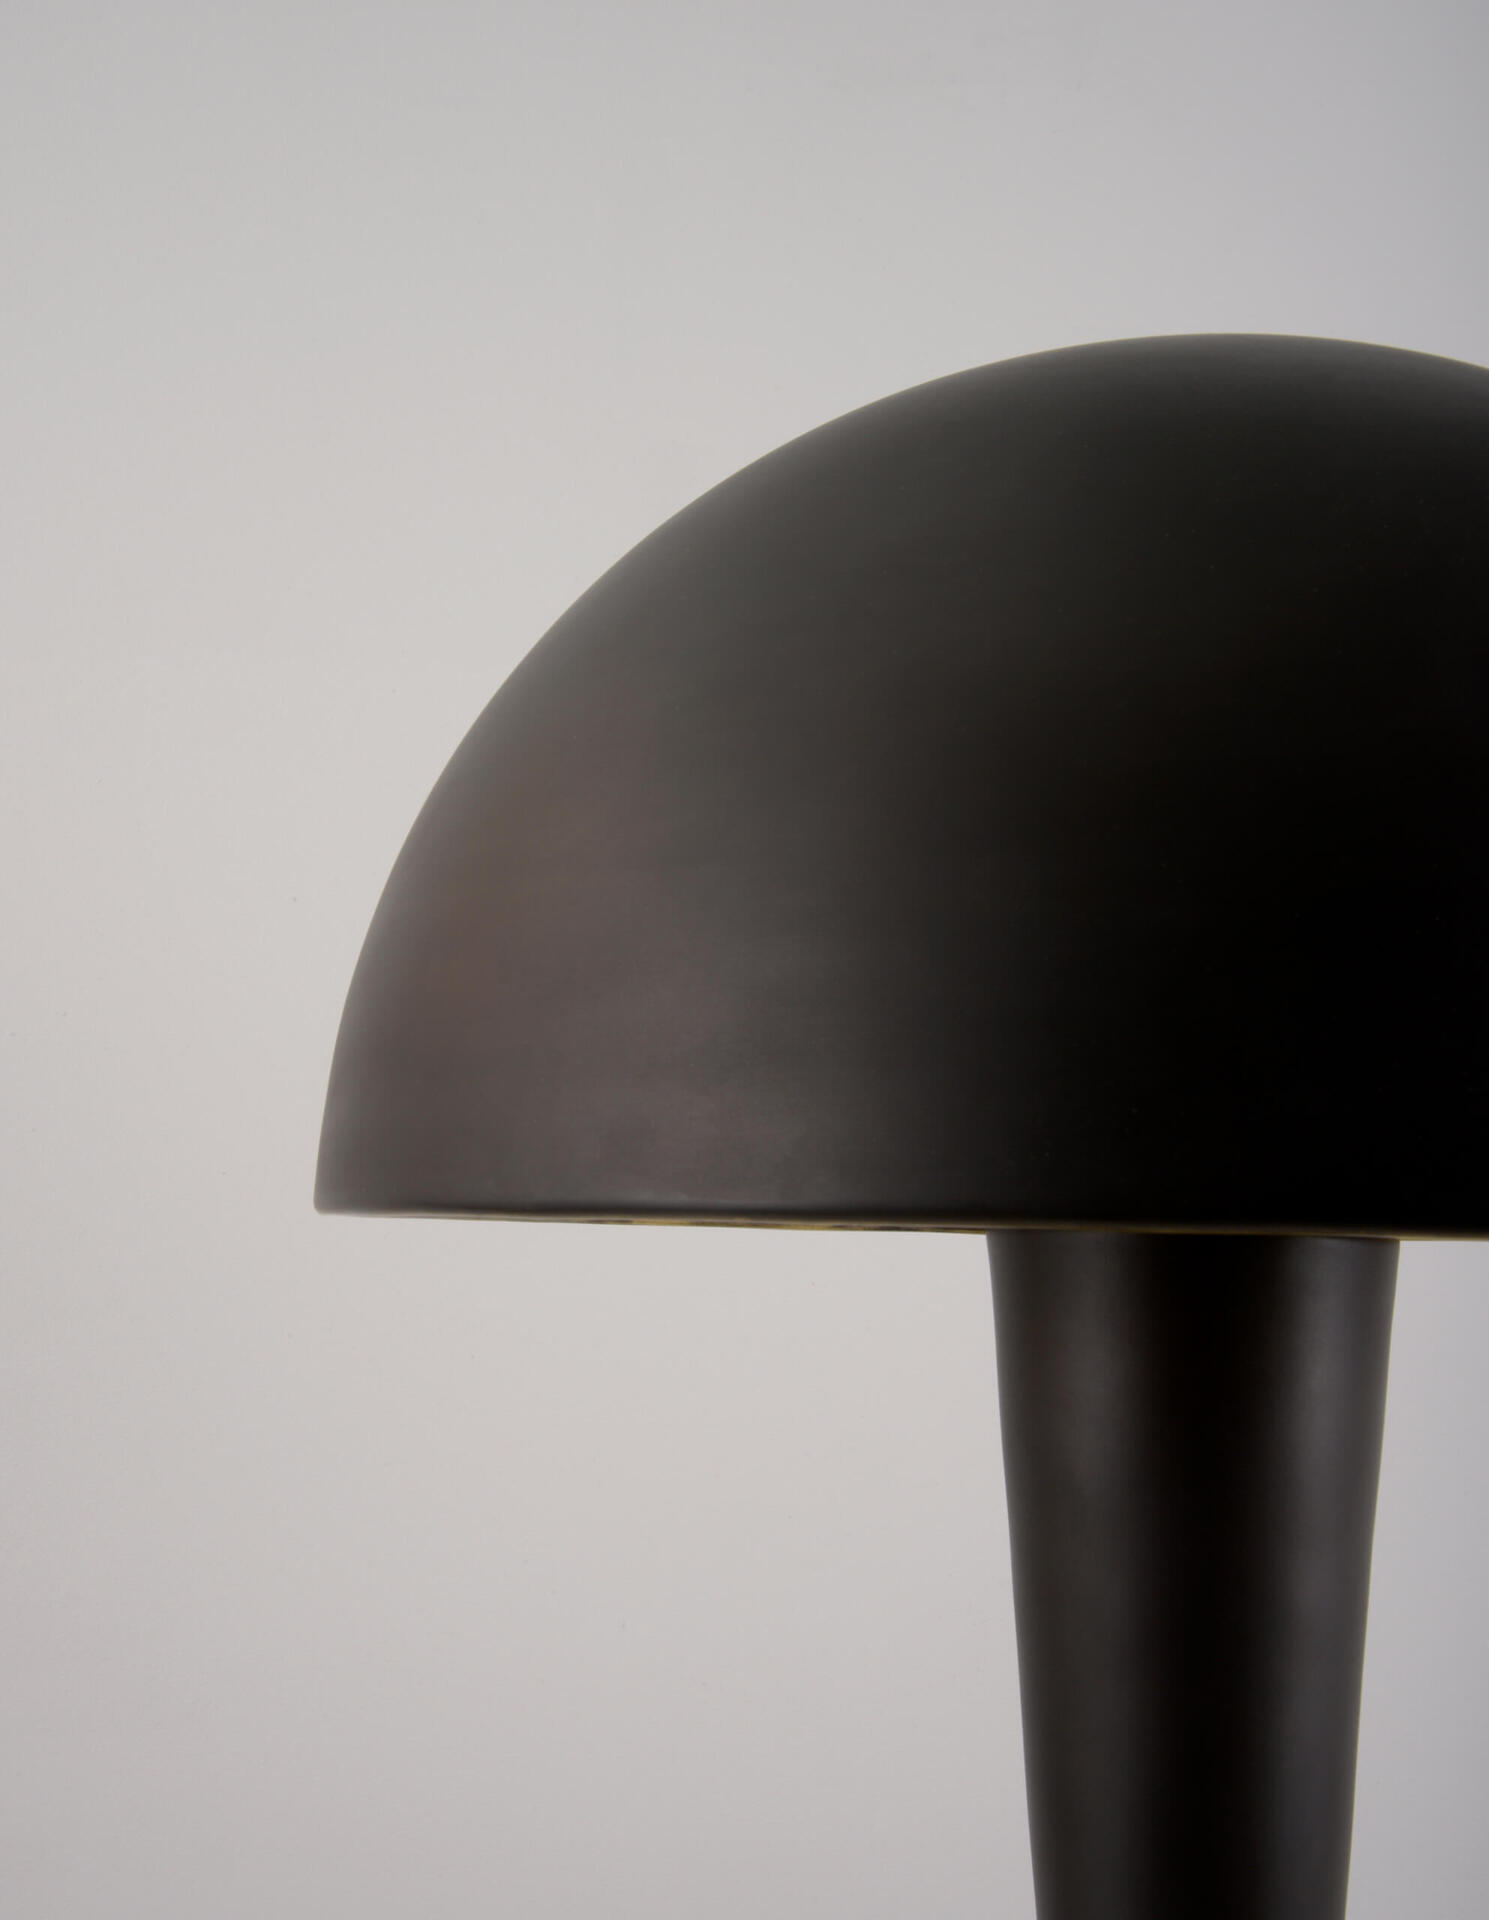 The Large Cep - a modernist table lamp by Collier Webb